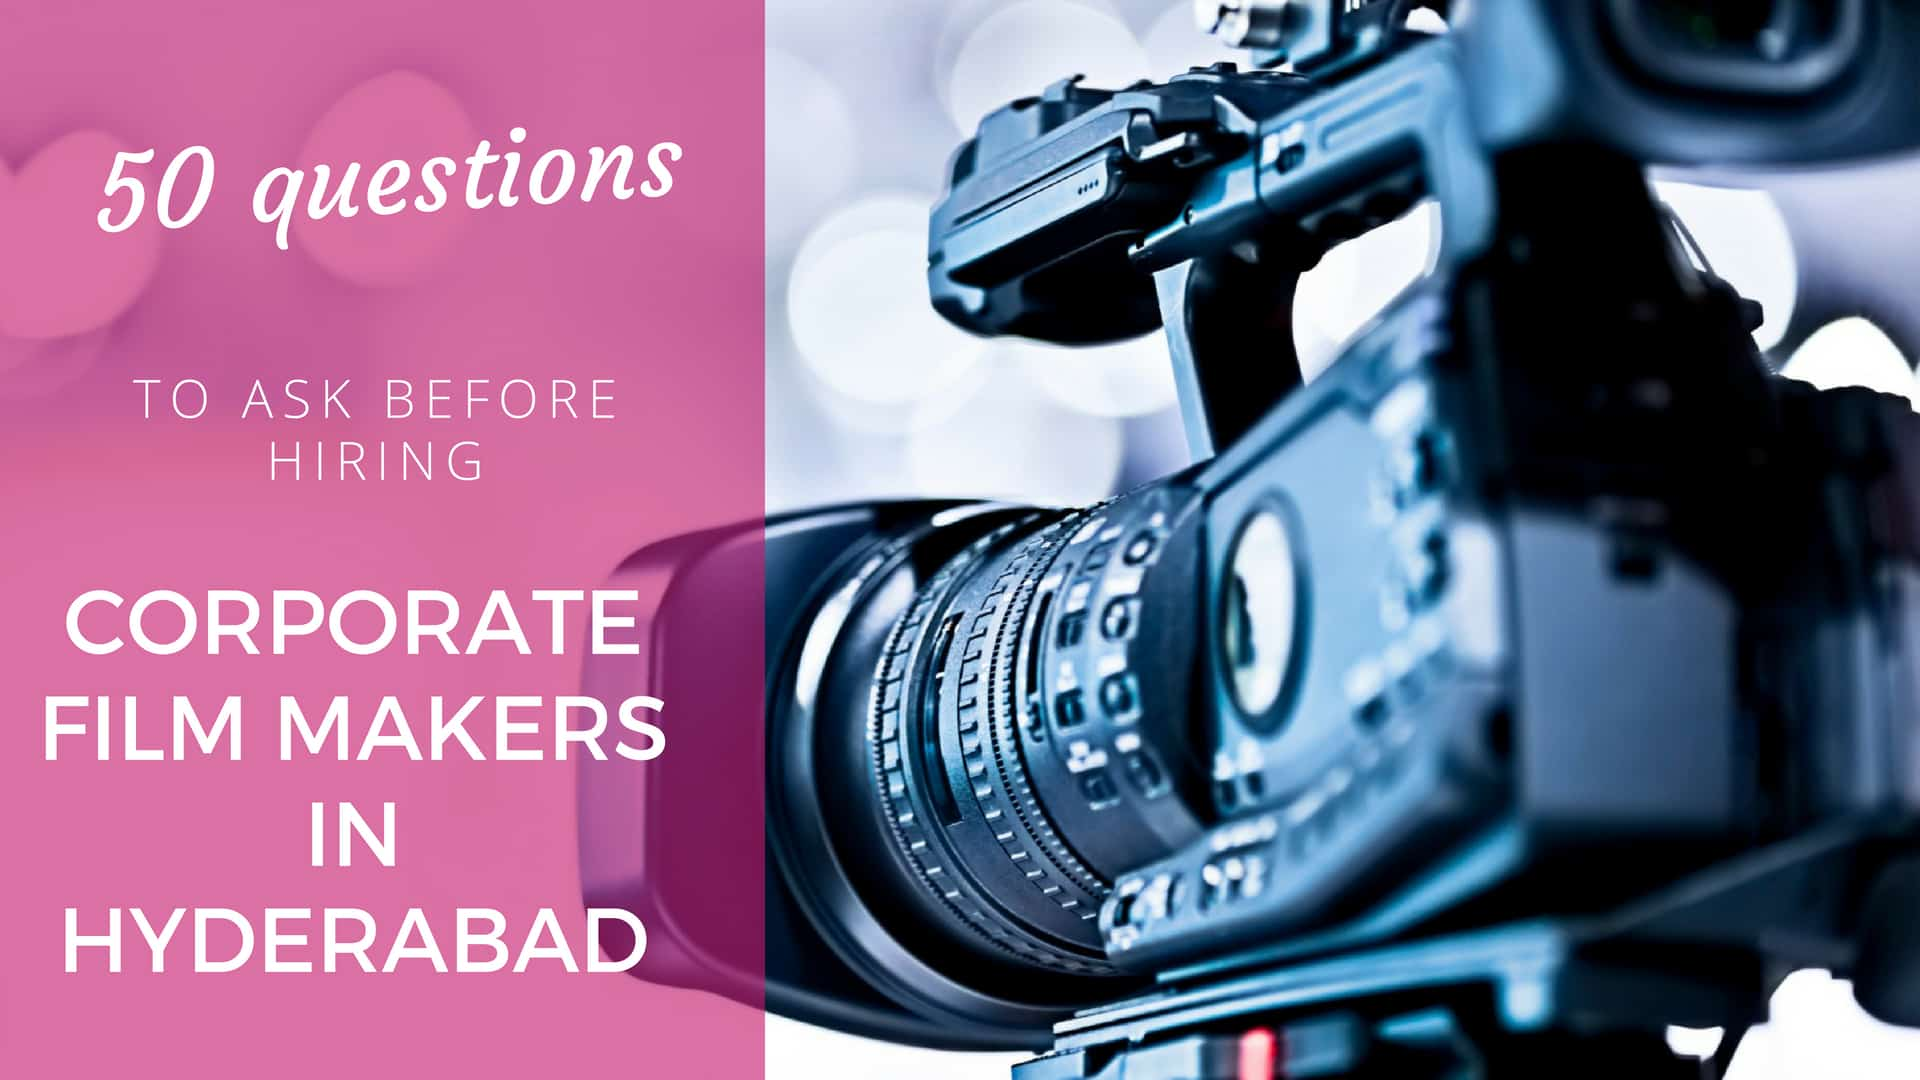 50 Questions to Ask Before Hiring Corporate Film Makers in Hyderabad